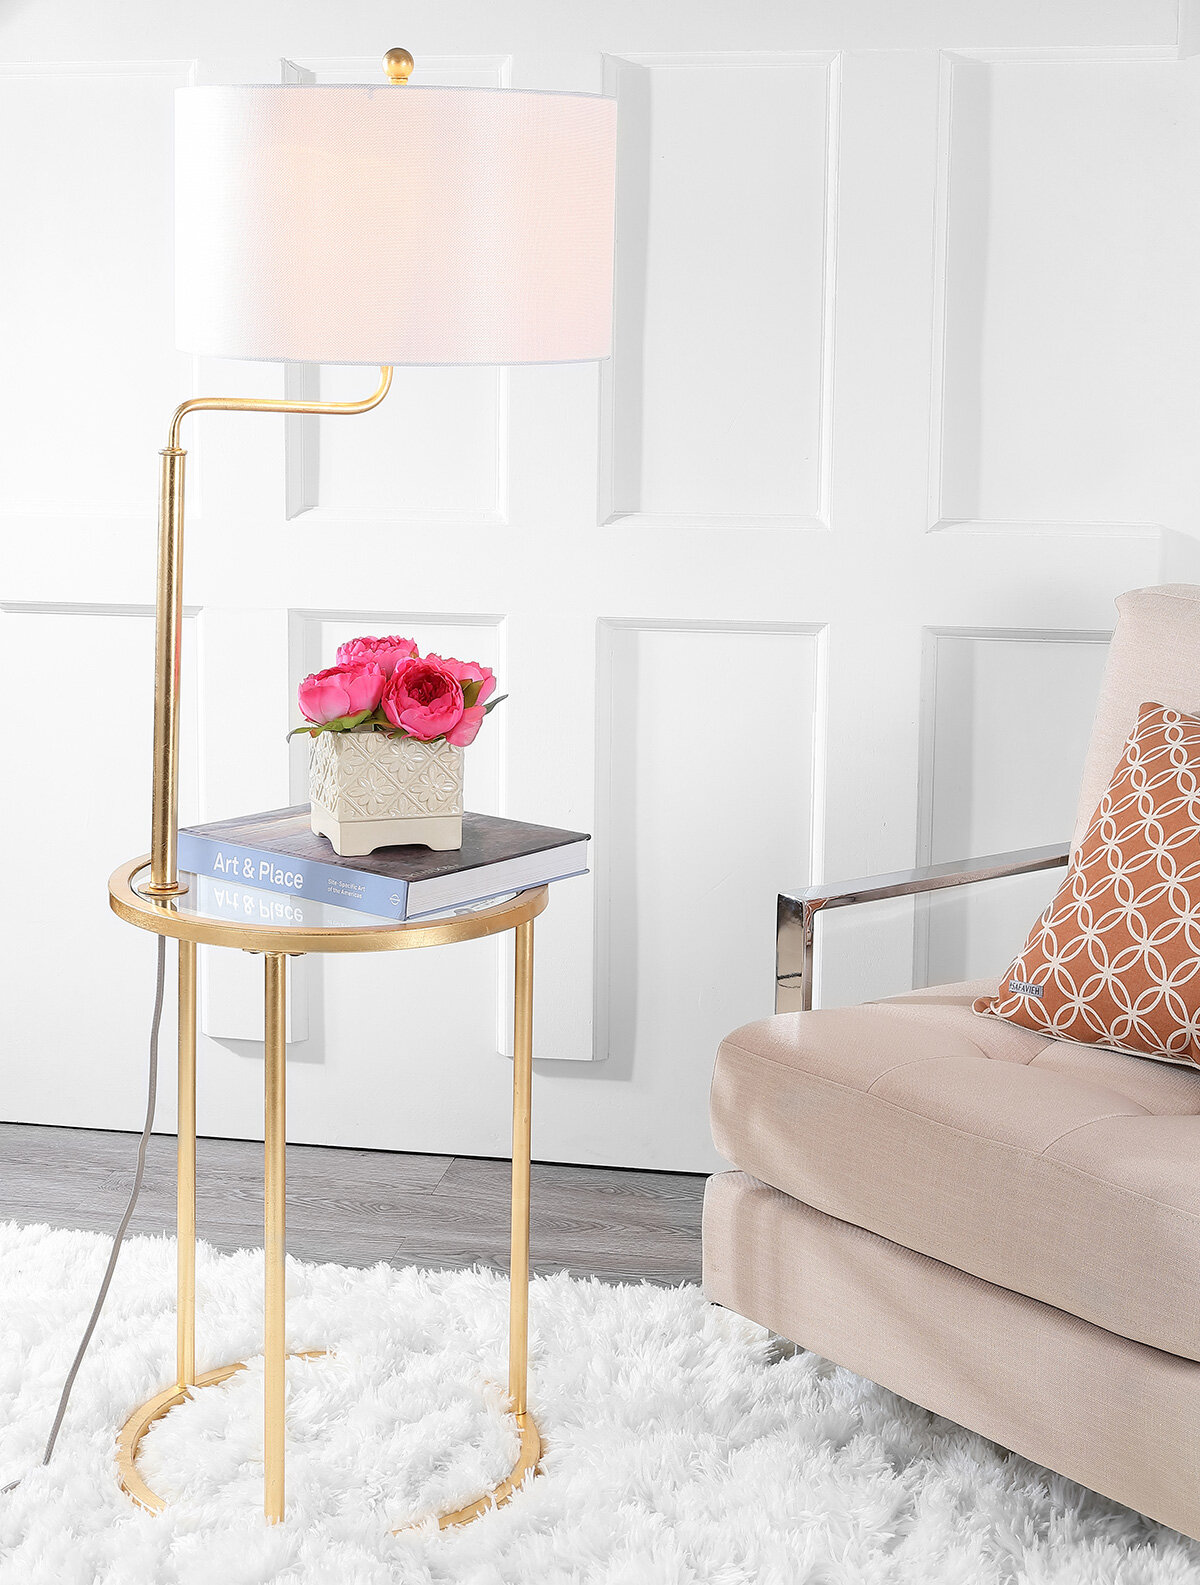 Somerset 57 Tray Table Floor Lamp